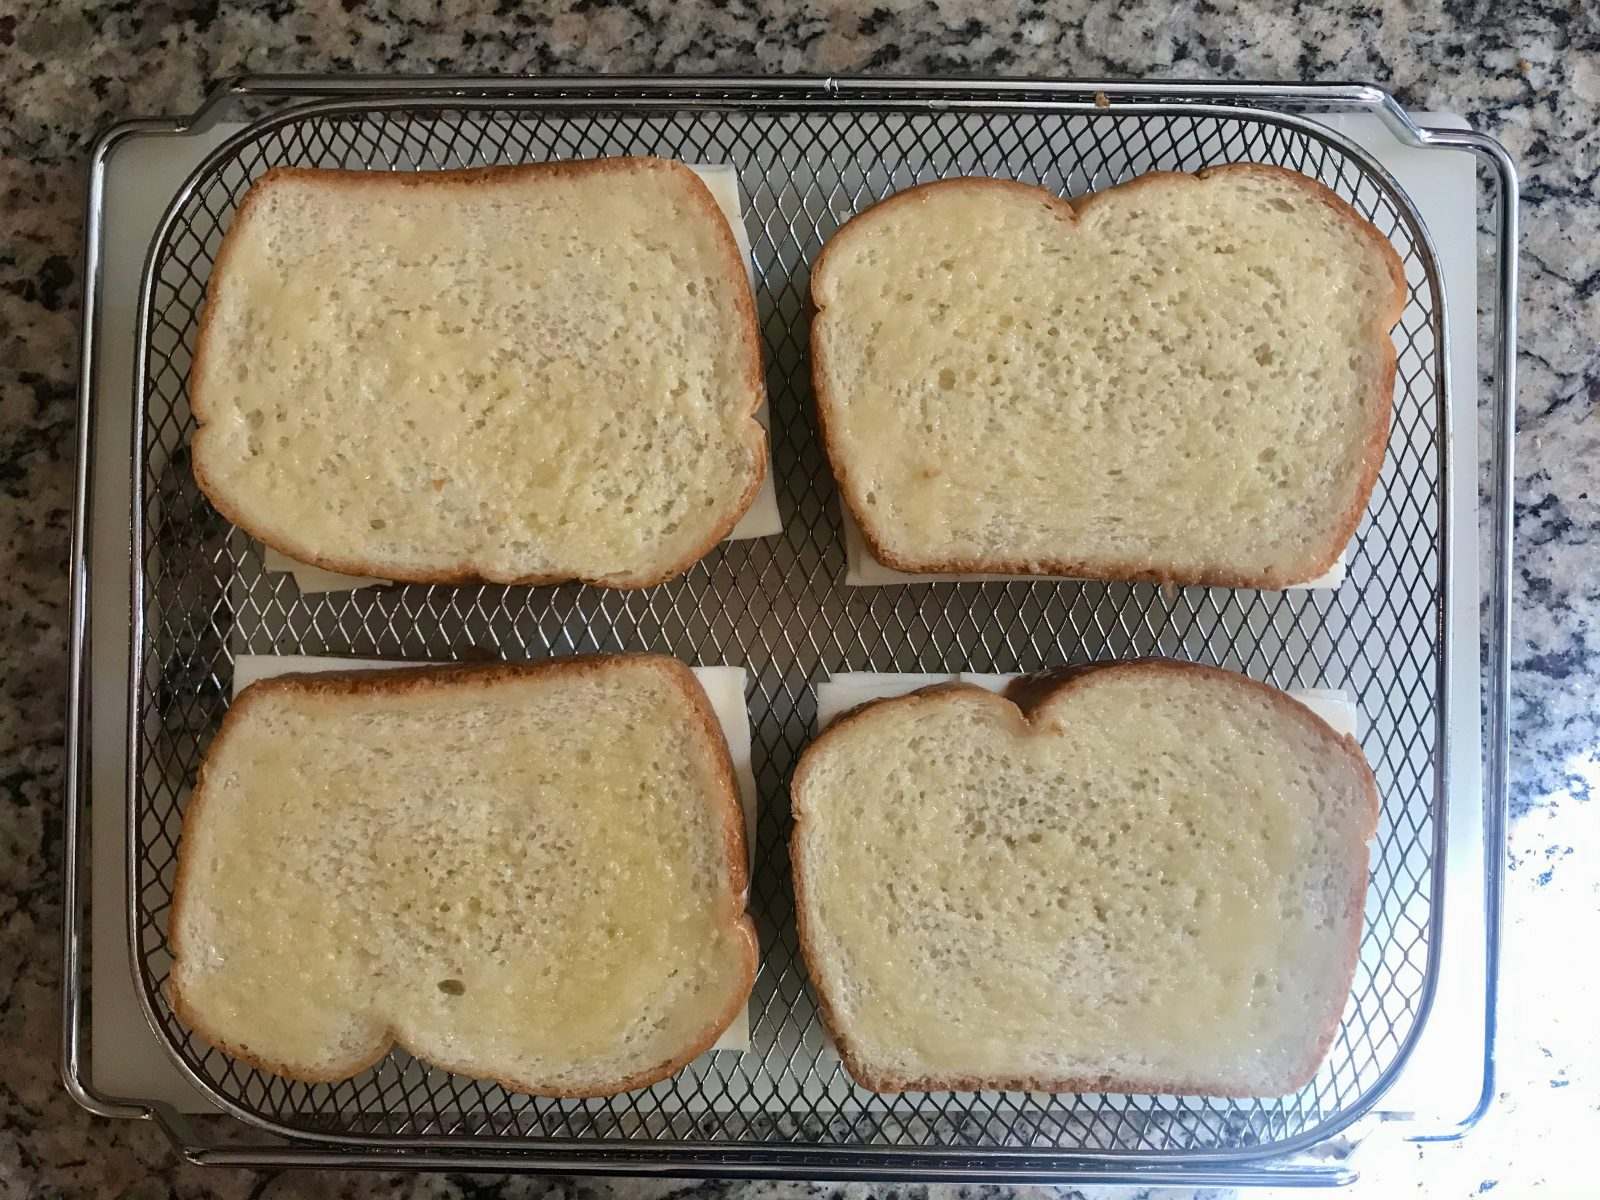 4 uncooked grilled cheese sandwiches brushed with melted butter in air fryer basket